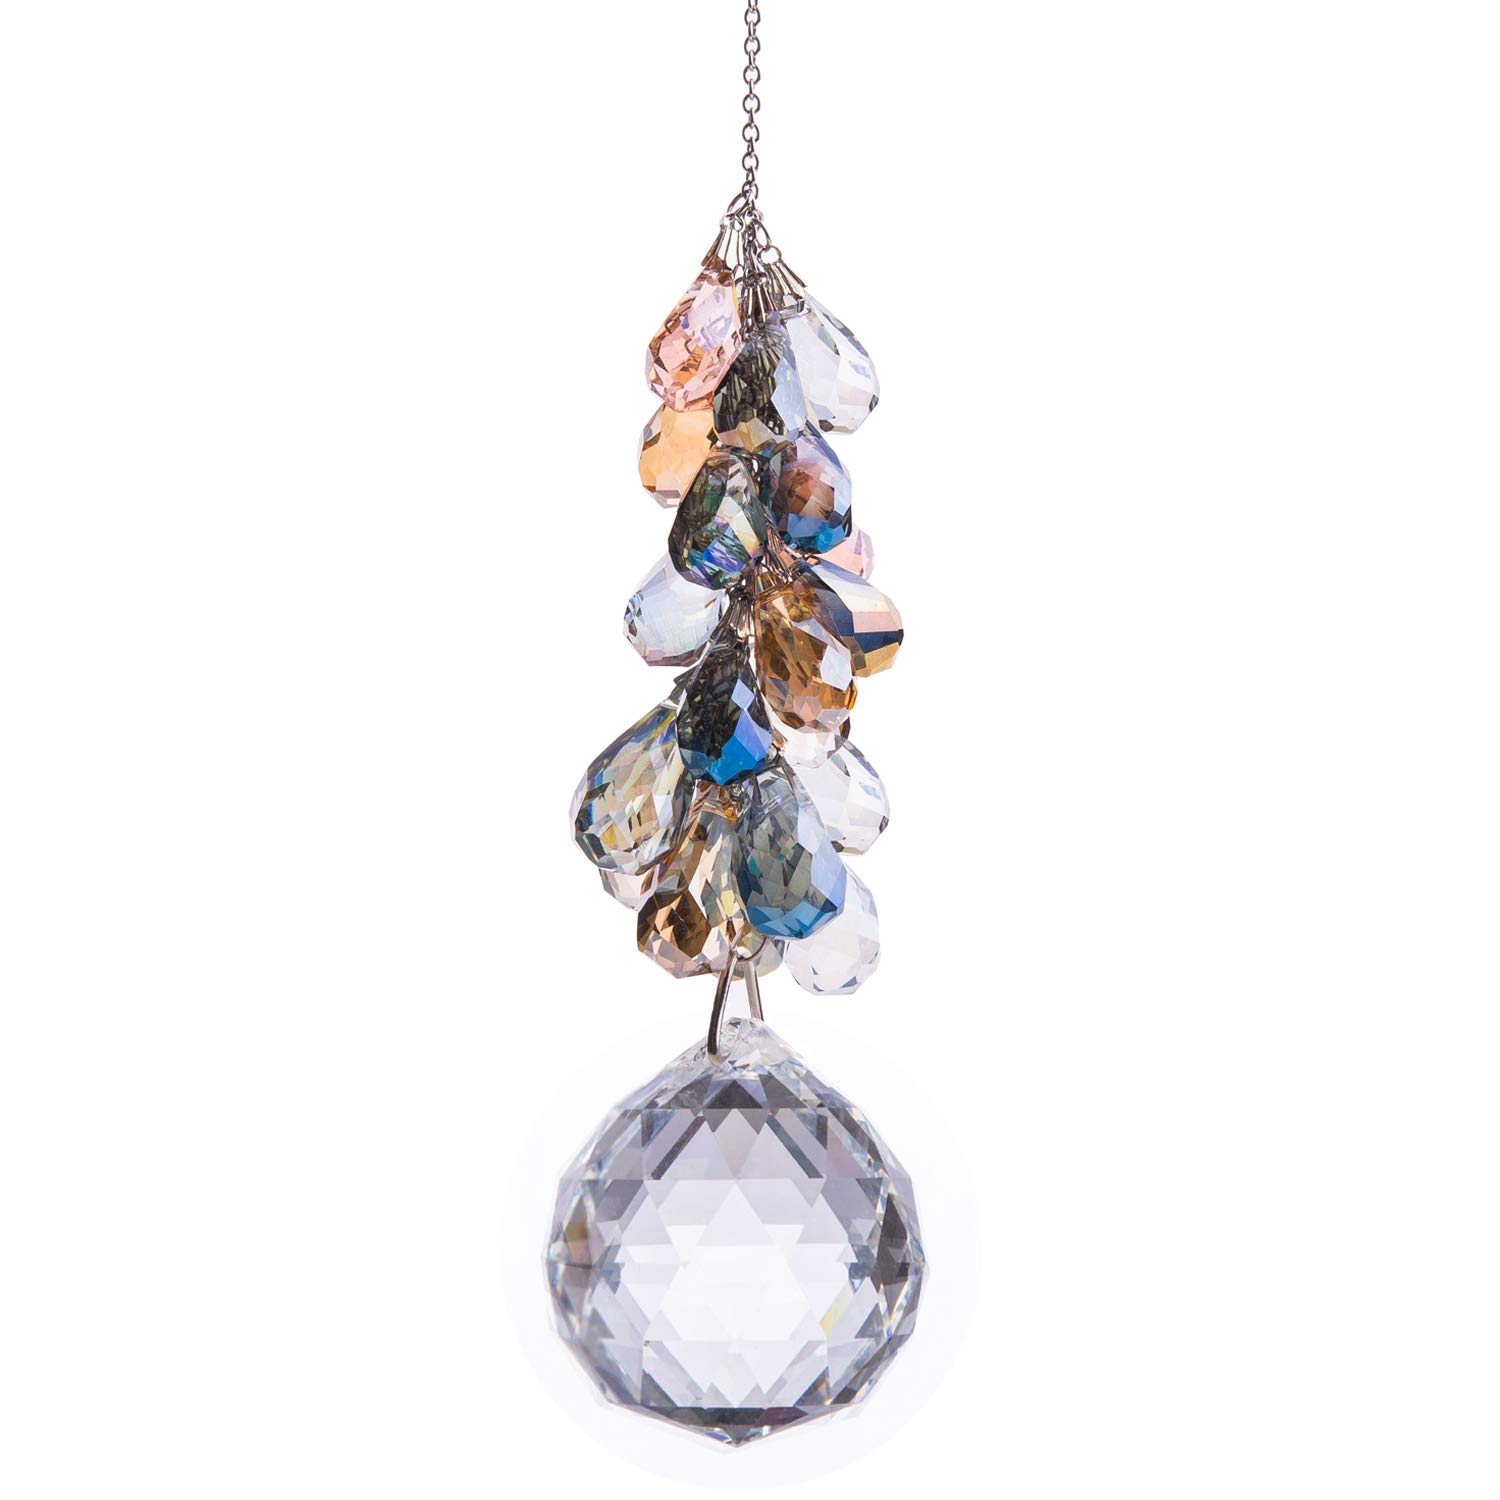 40mm Crystals Ball Prisms Suncatcher Hanging Ornament Chakra Crystals Rainbow Maker with Colors Crystal Pendants for Home,Office,Garden Decoration